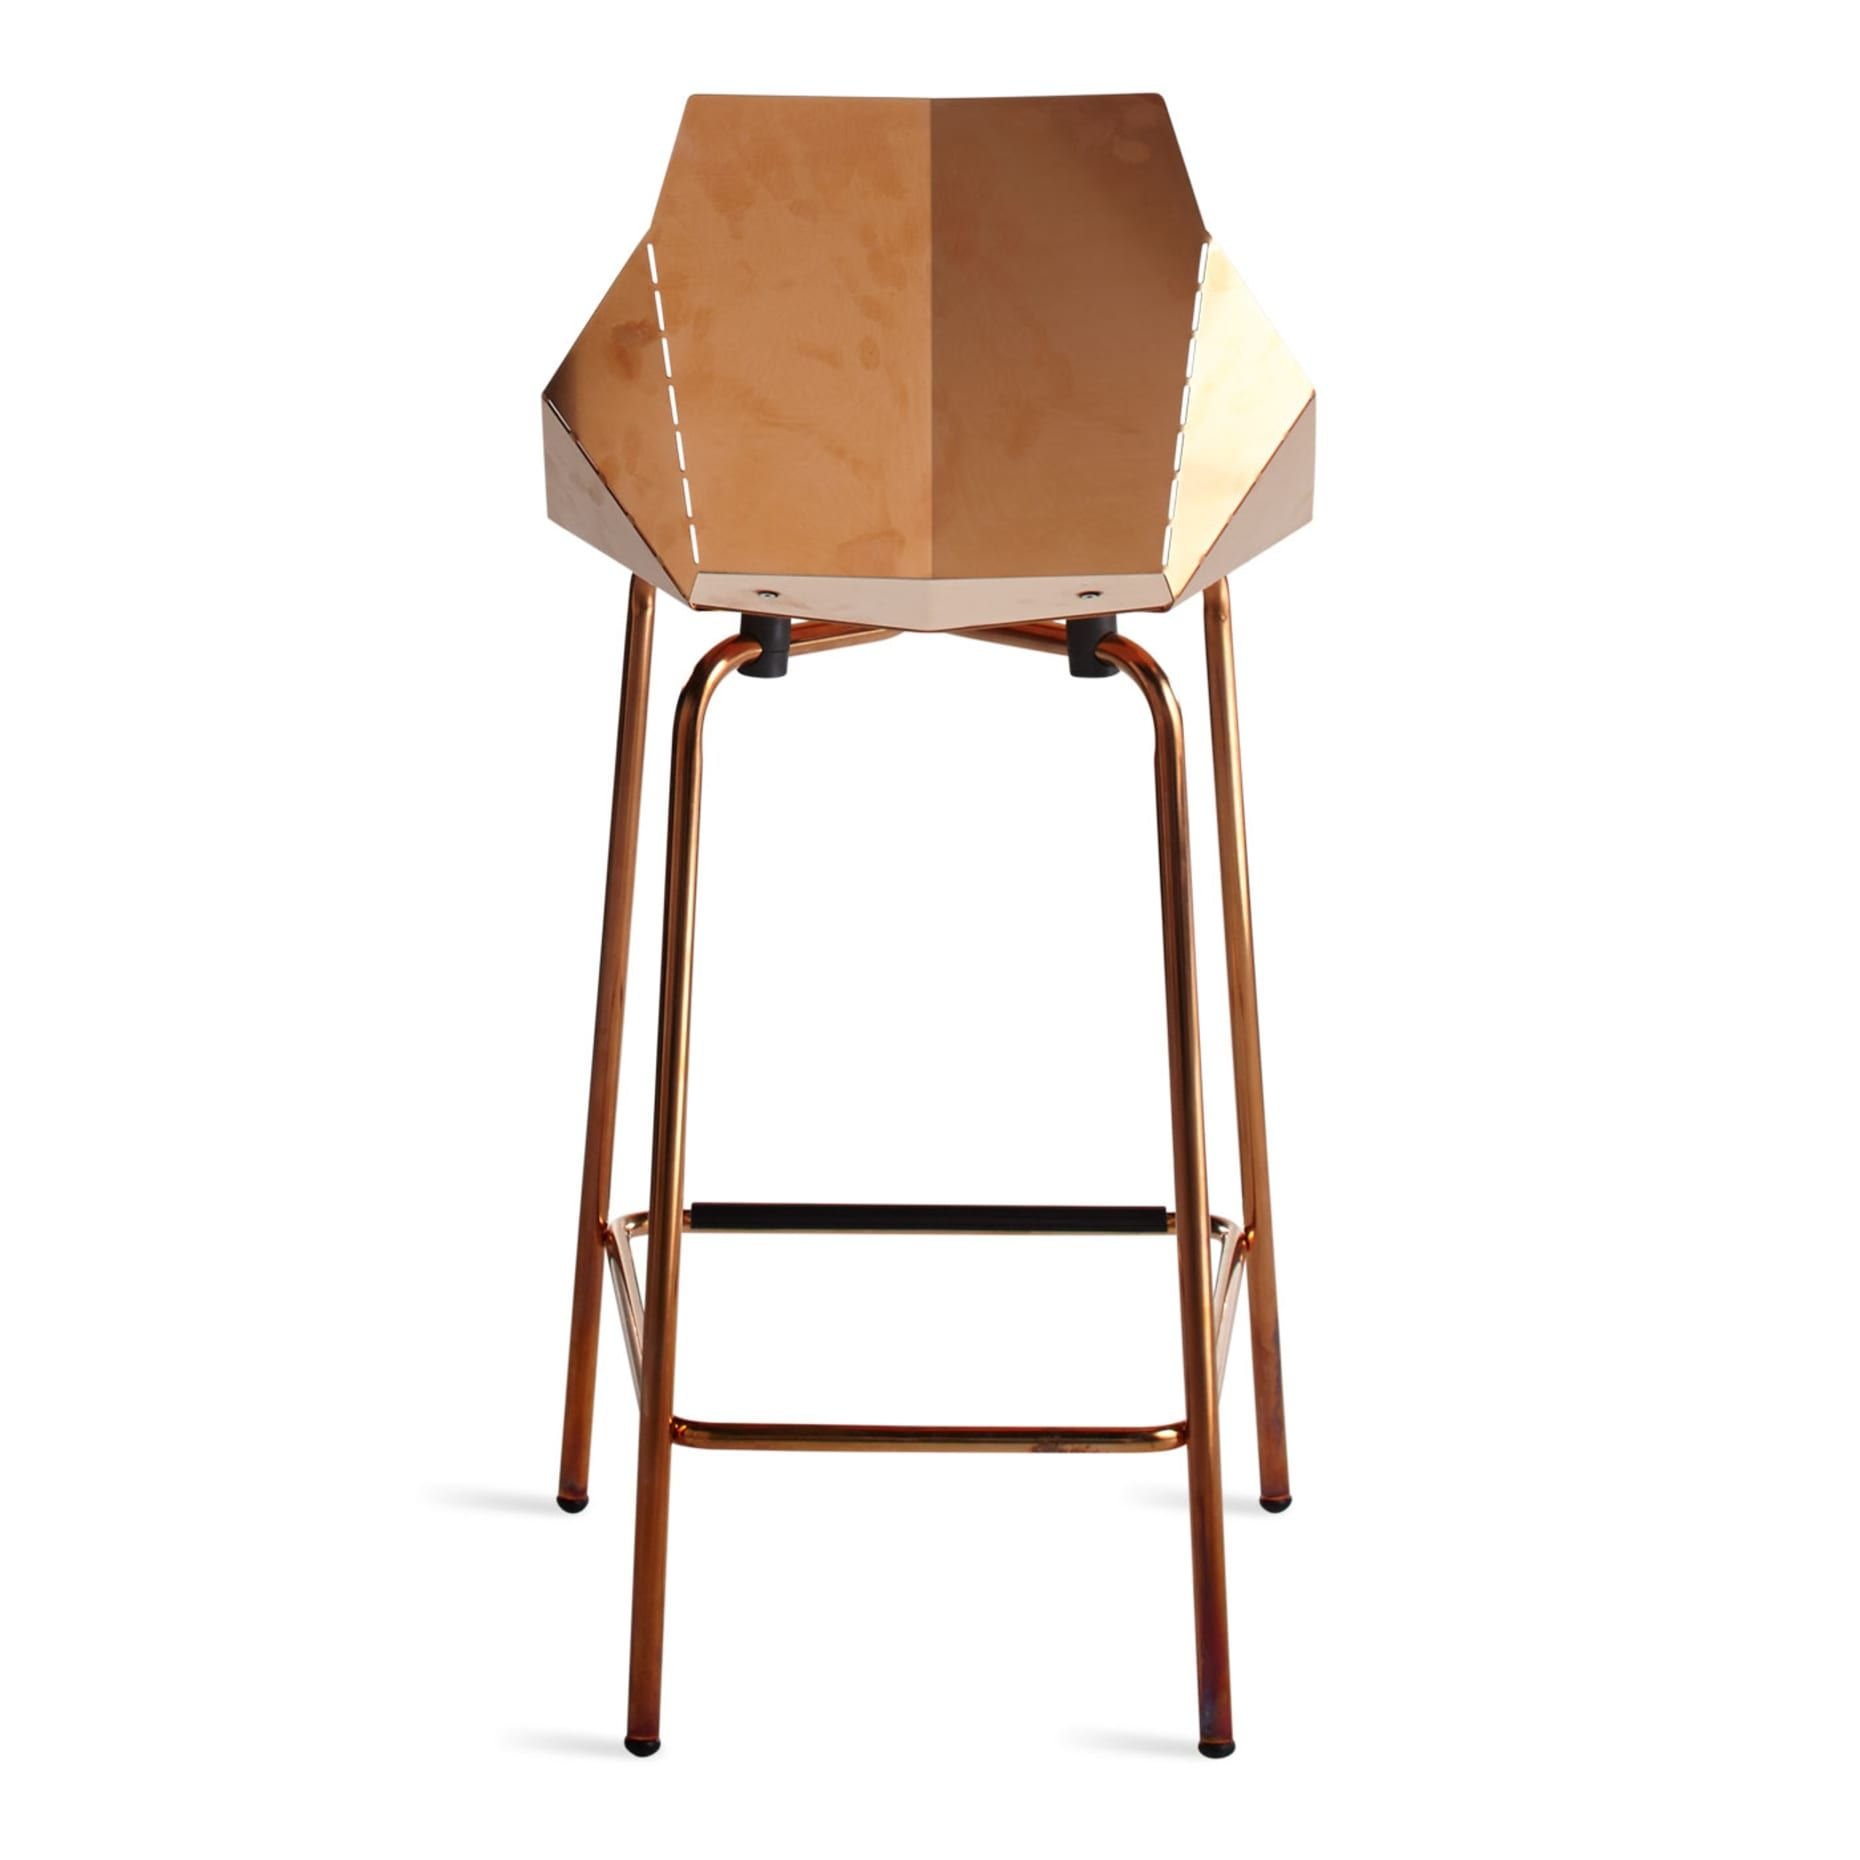 Real Good Counter Stool Copper Copper Bar Stools Counter Stools Bar Stools